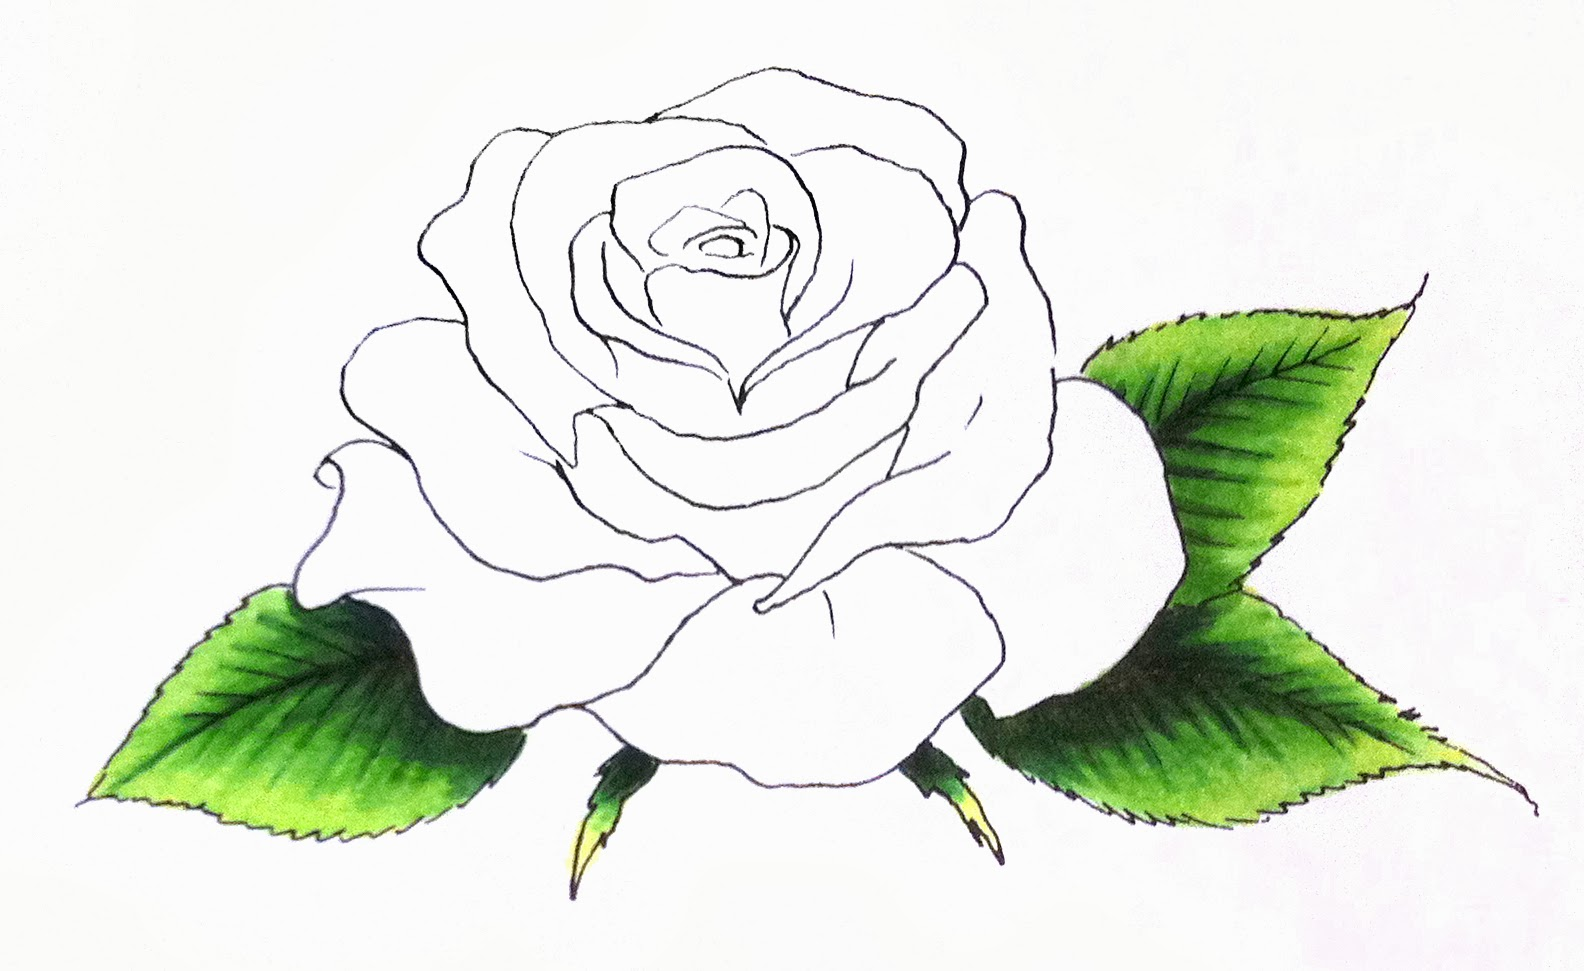 It's just an image of Dynamite Rose Petal Drawing